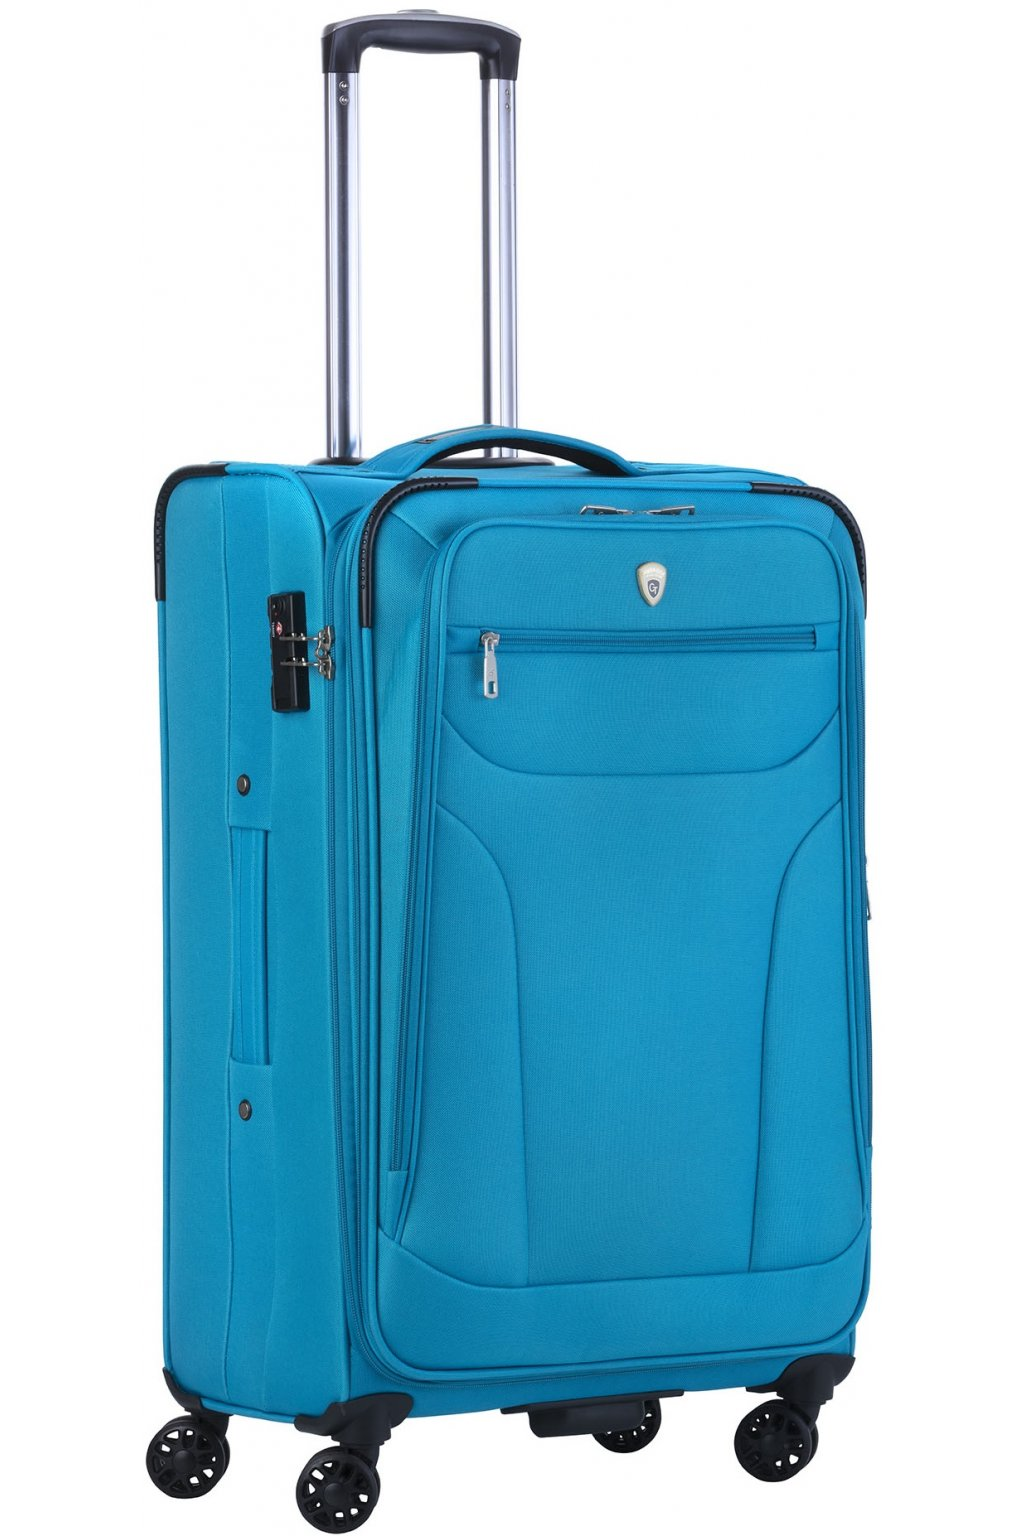 kufrland carryon cambridge teal (5)